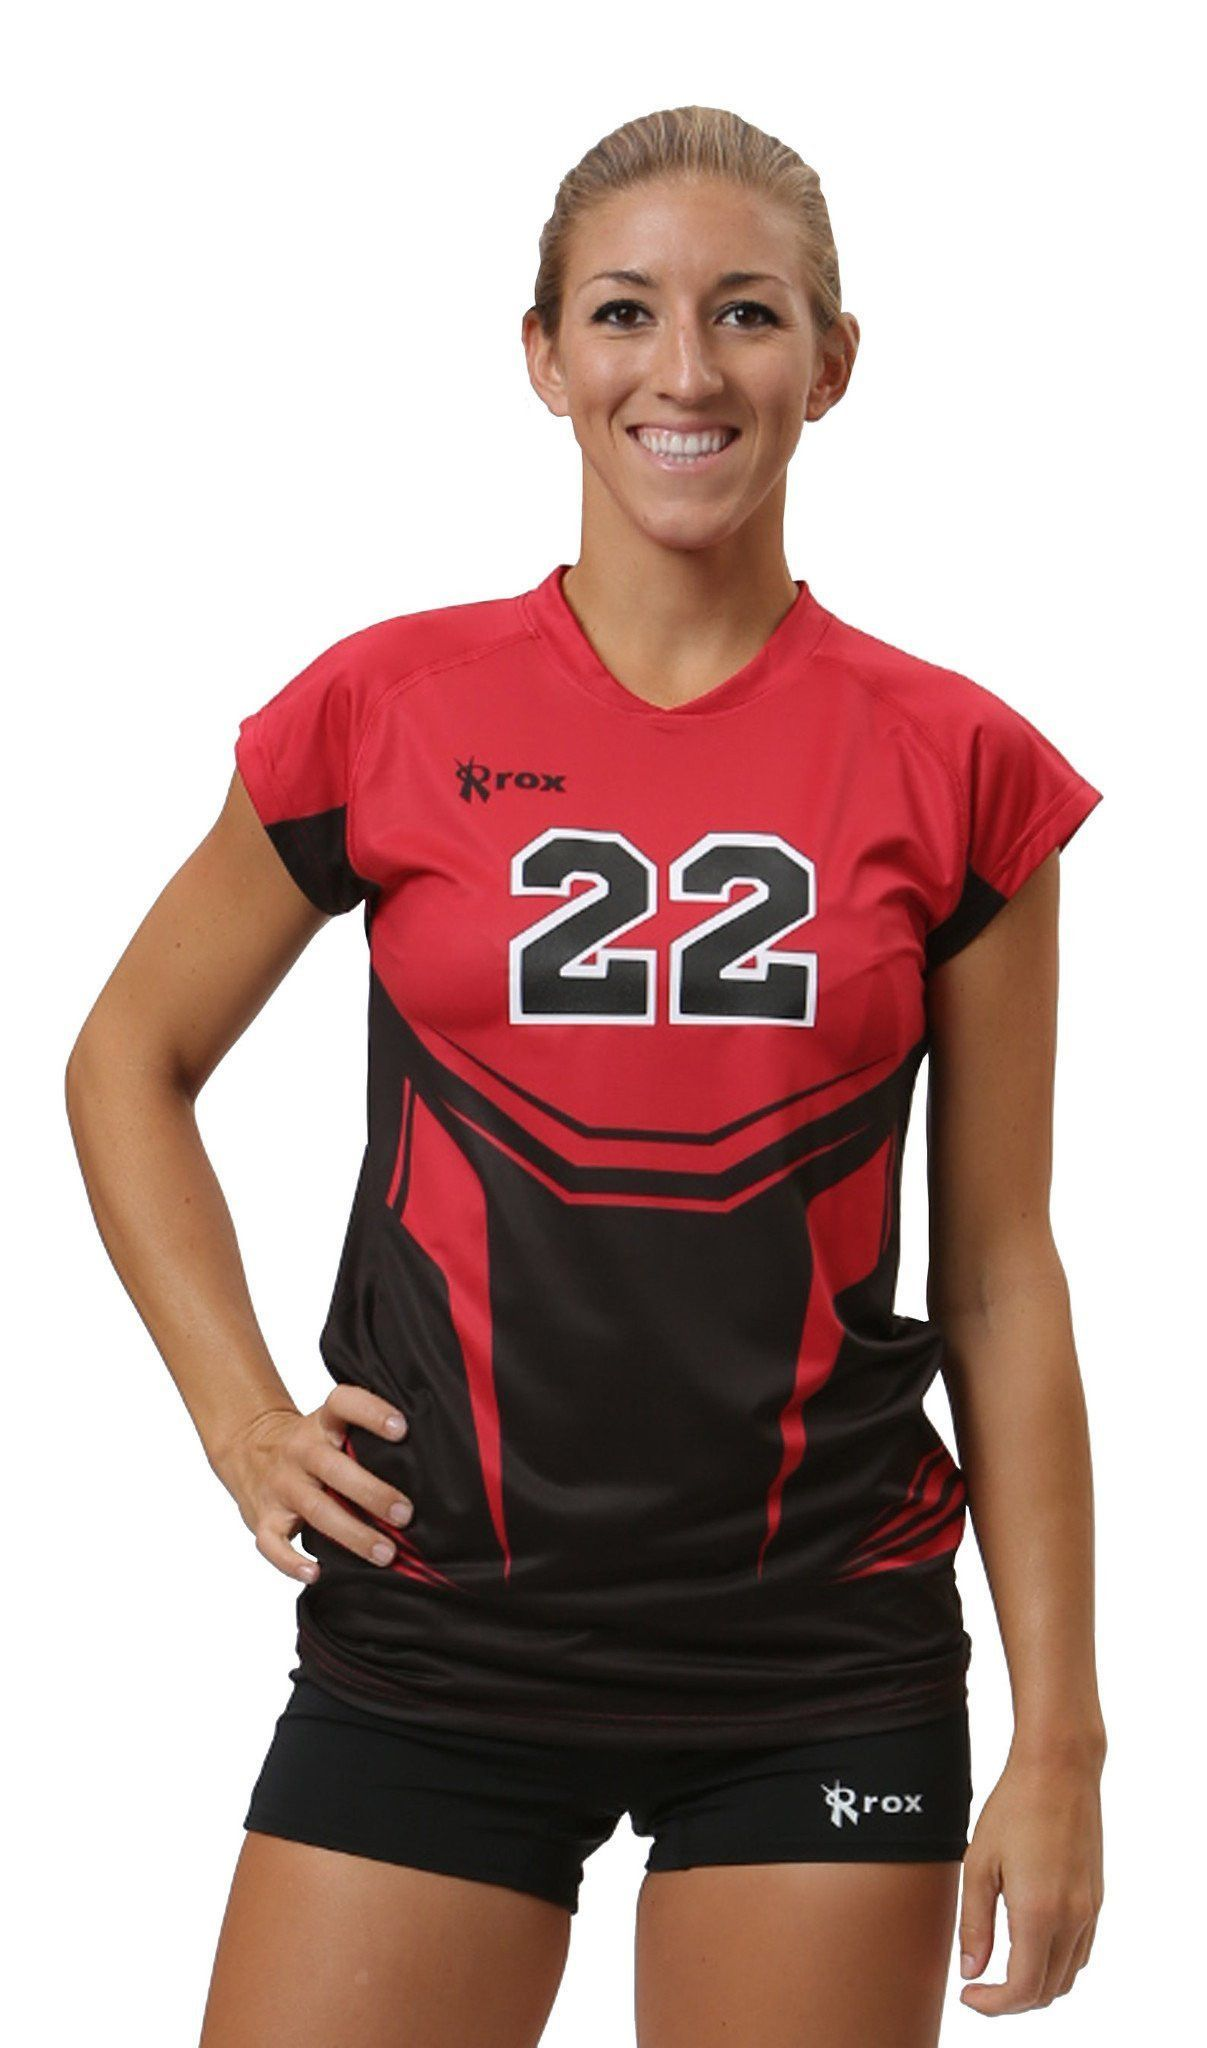 Phoenix Stock Cap Sleeve 1125 2390 Red Black Volleyball Jersey Design Cap Sleeves Black And Red